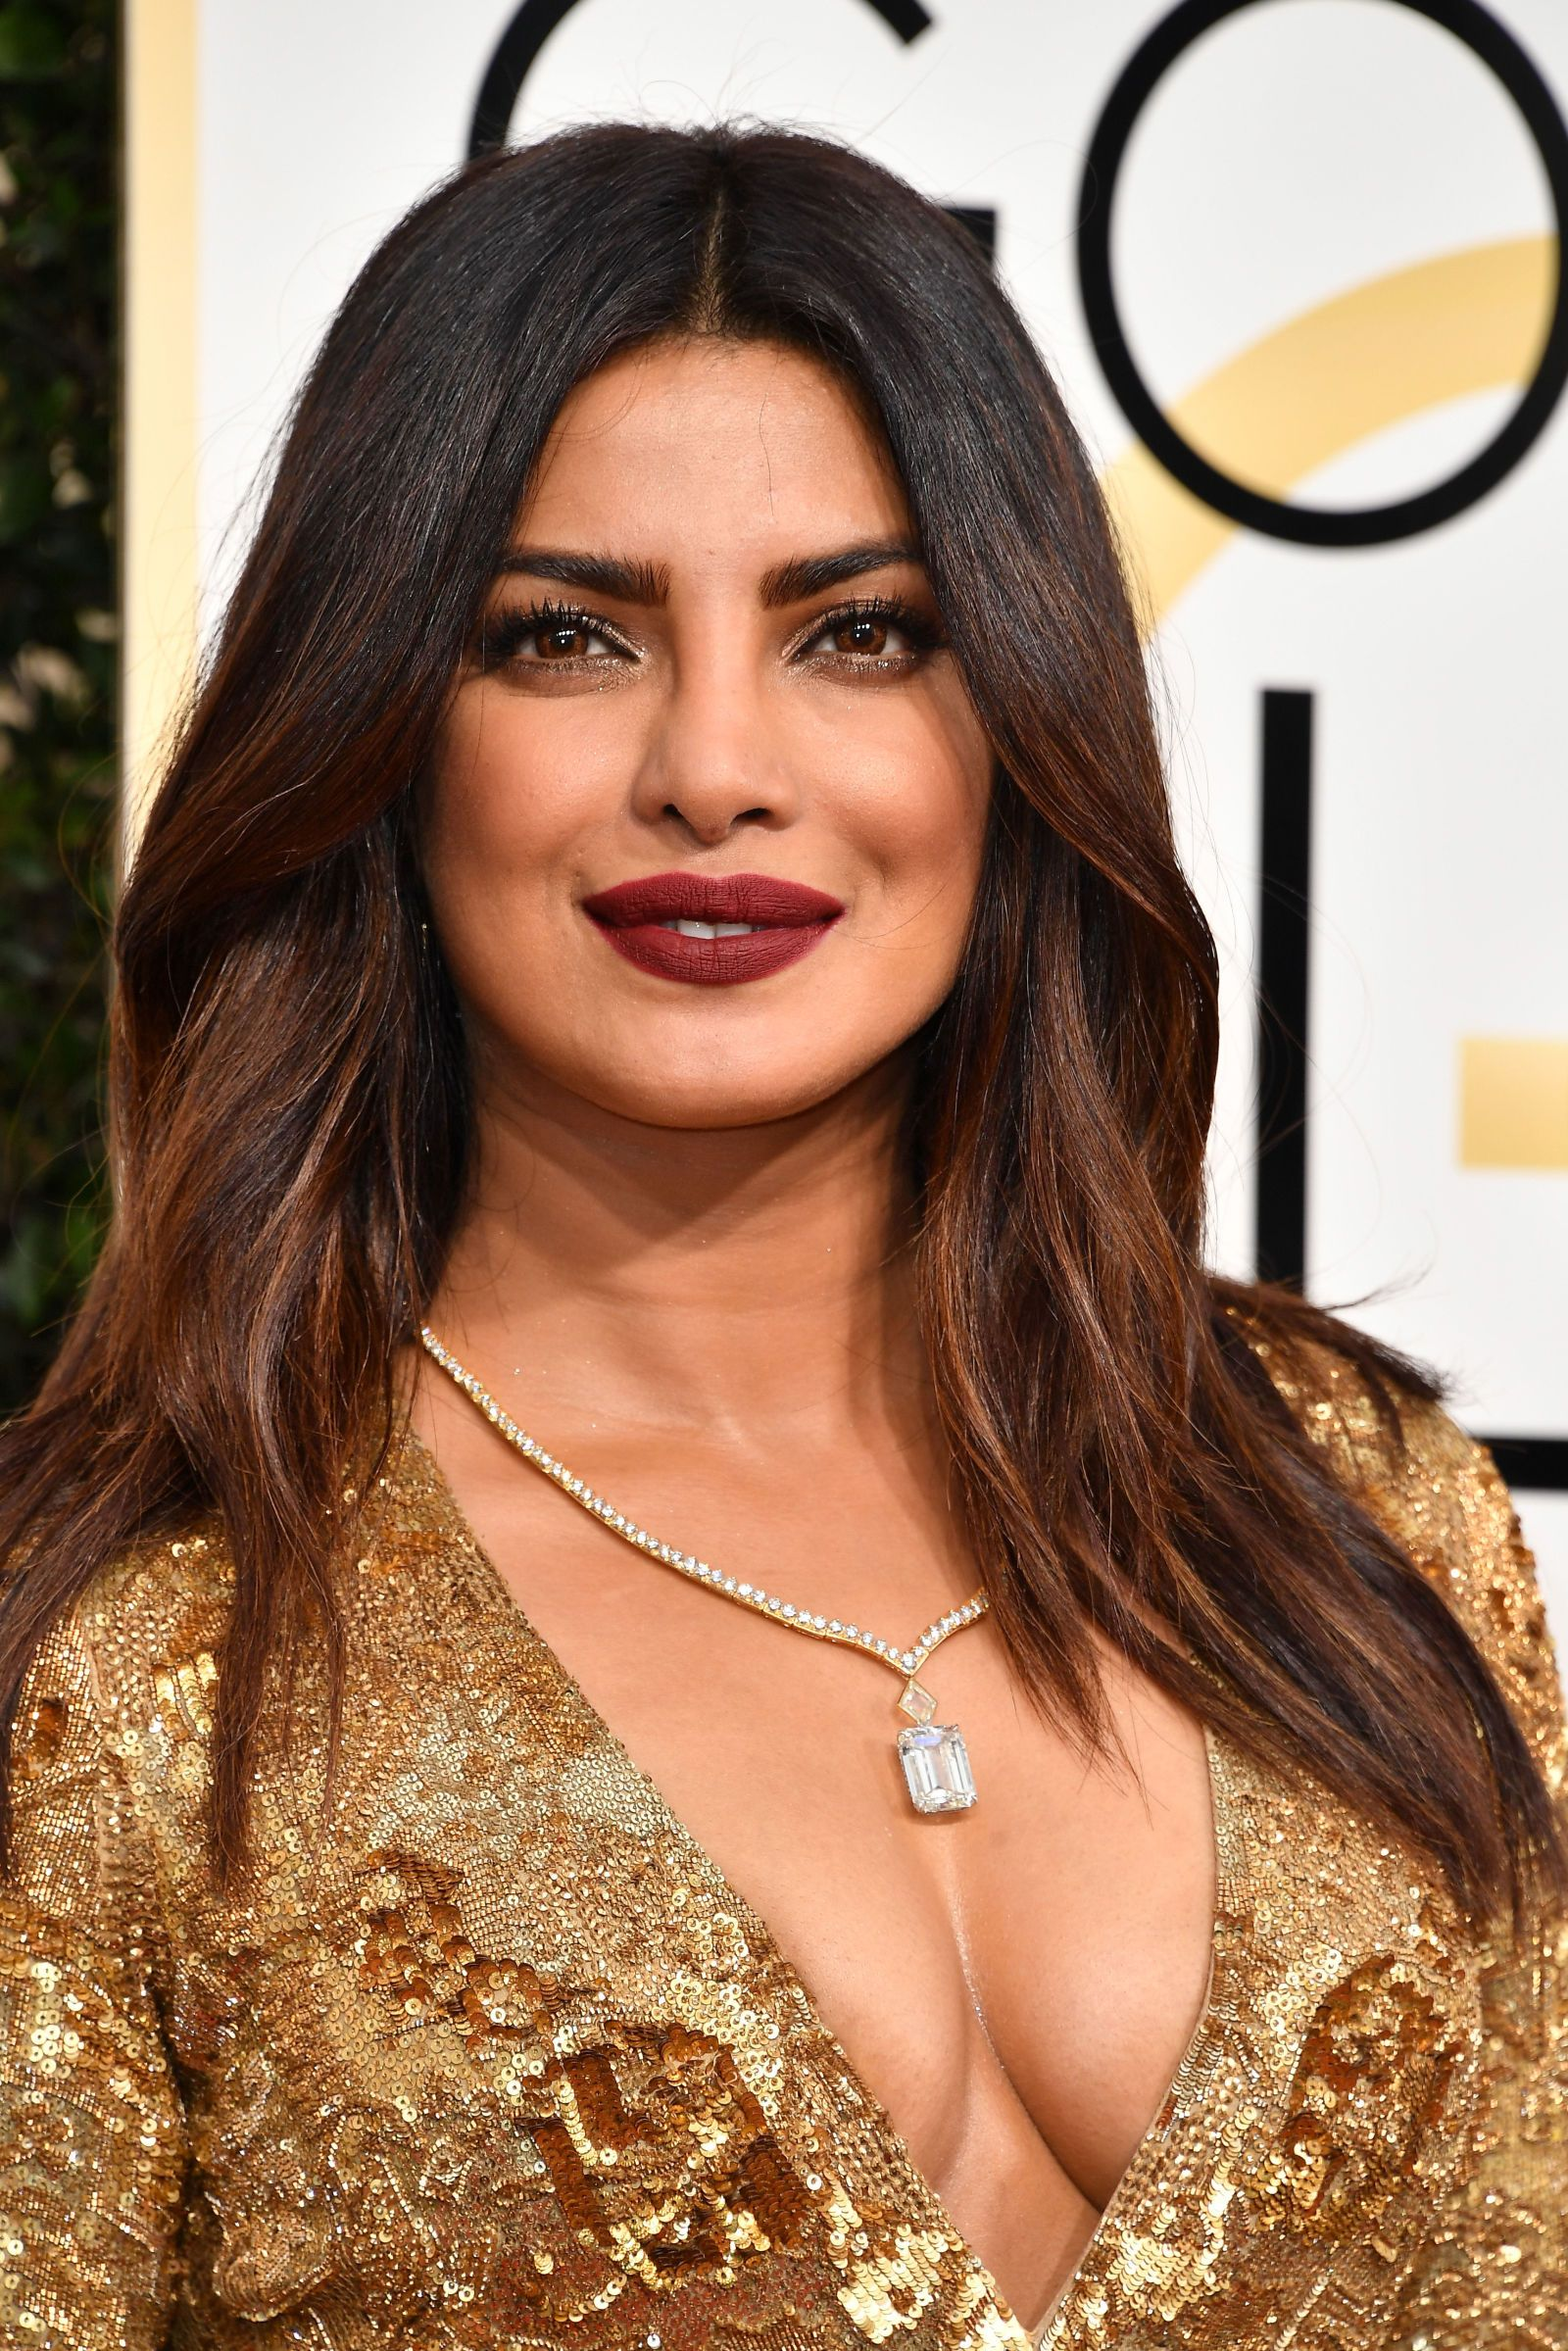 The Best Beauty Looks from the 2017 Golden Globes | Beauty ...